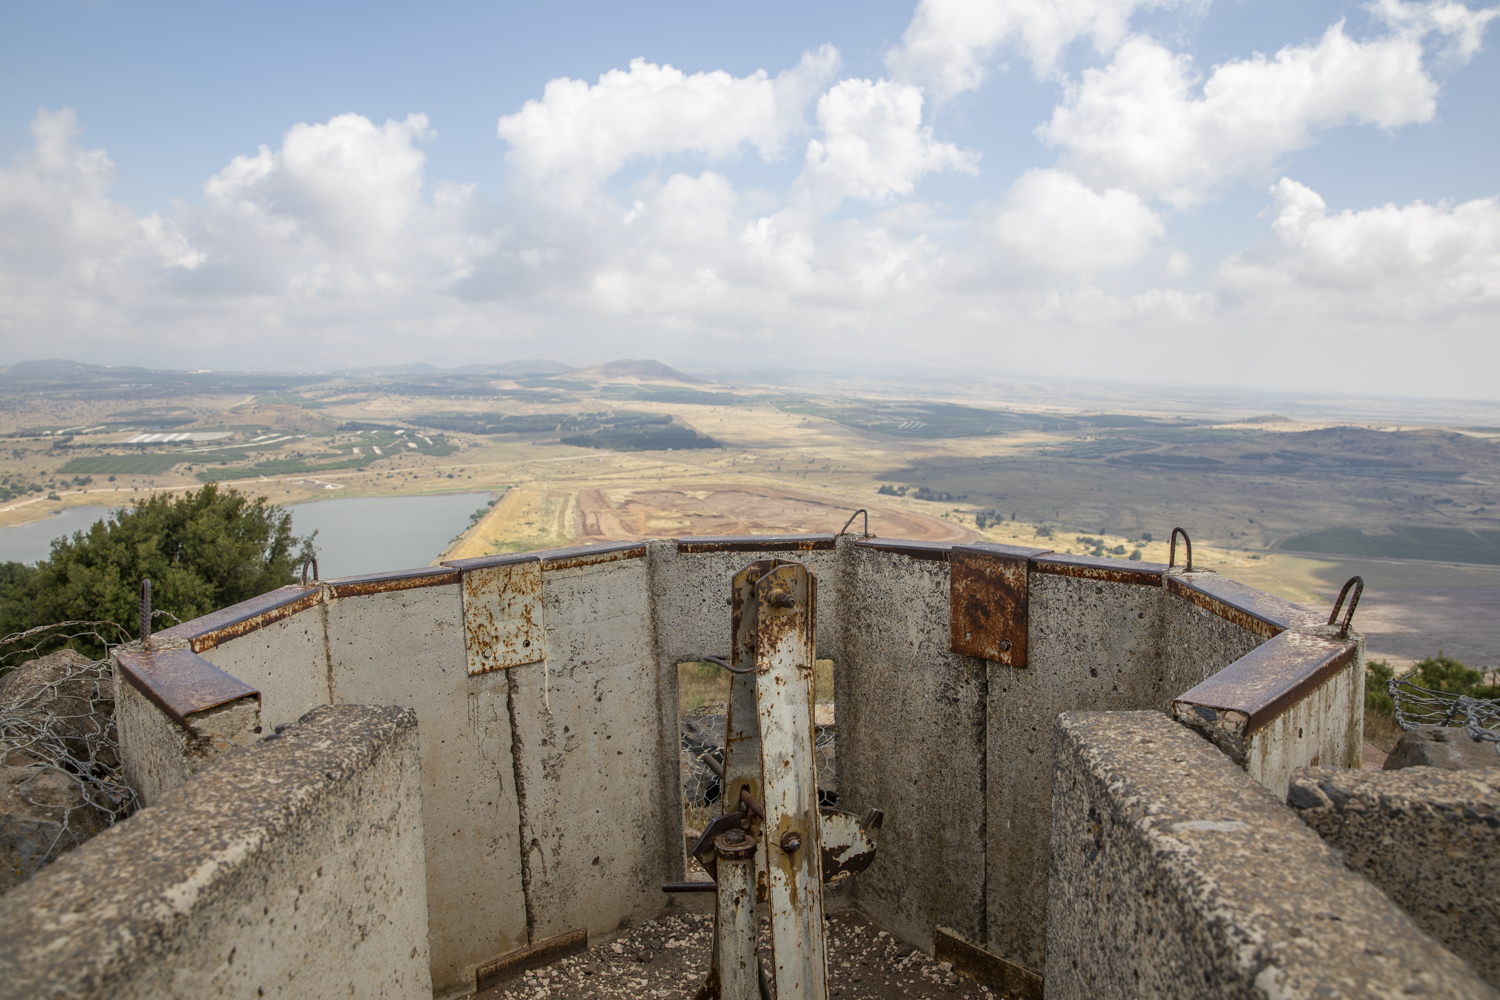 A lookout point from a bunker on top of the mountain shows views of the Israeli, Lebanese and Syrian land.